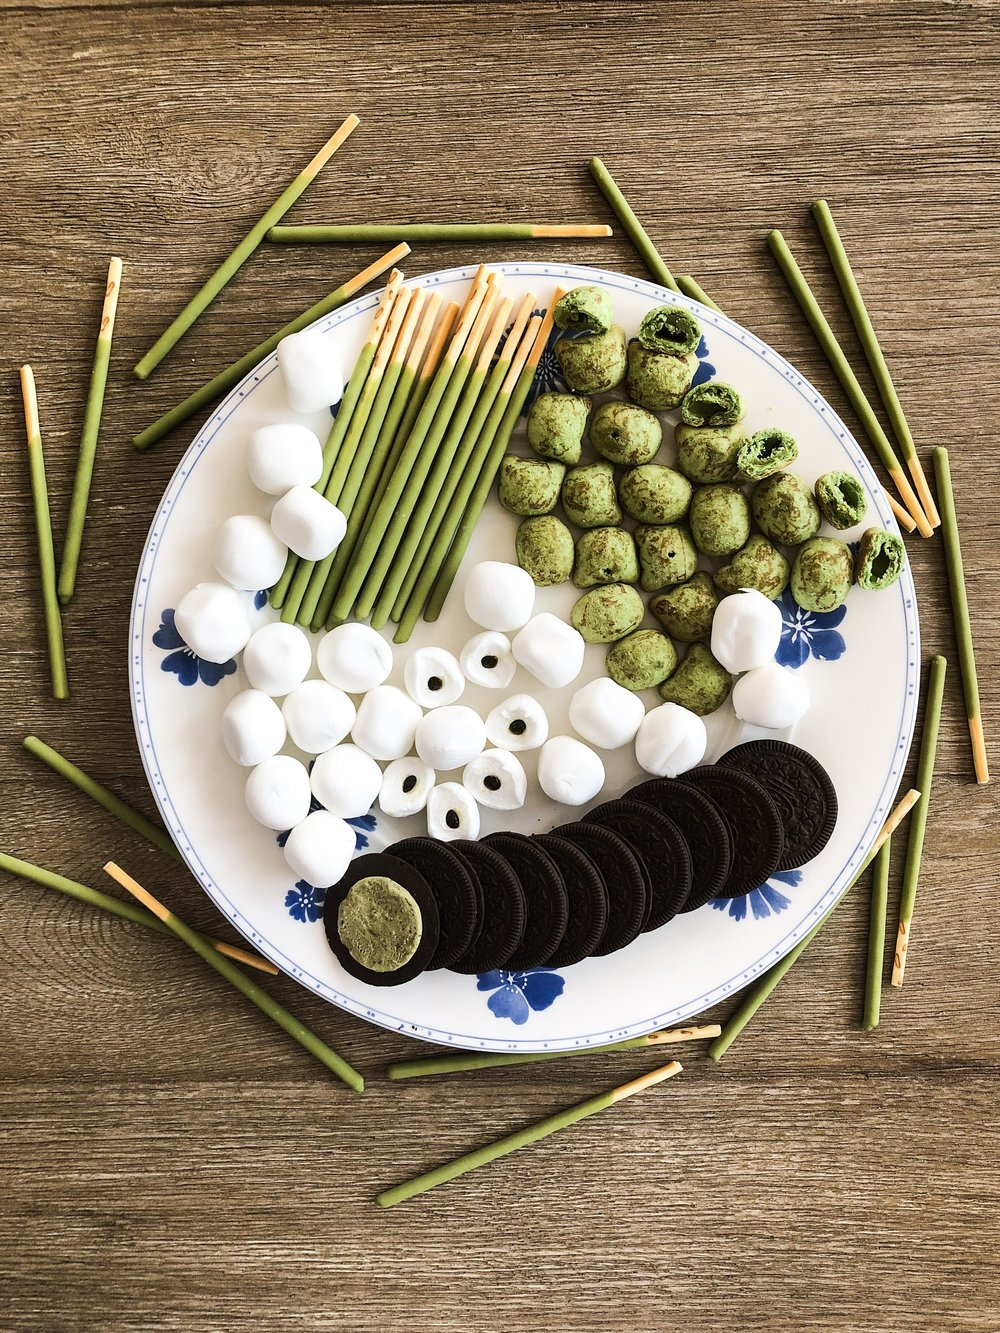 Matcha Snacks - Green Tea (Matcha) is a popular Japanese flavor that finds itself in a huge variety of sweet snacks and drinks. Here you can see Matcha Pocky sticks, Hello Kitty marshmallows with matcha jelly, Matcha Oreos, and Hello Panda matcha cookies (all from Nippan Daido).